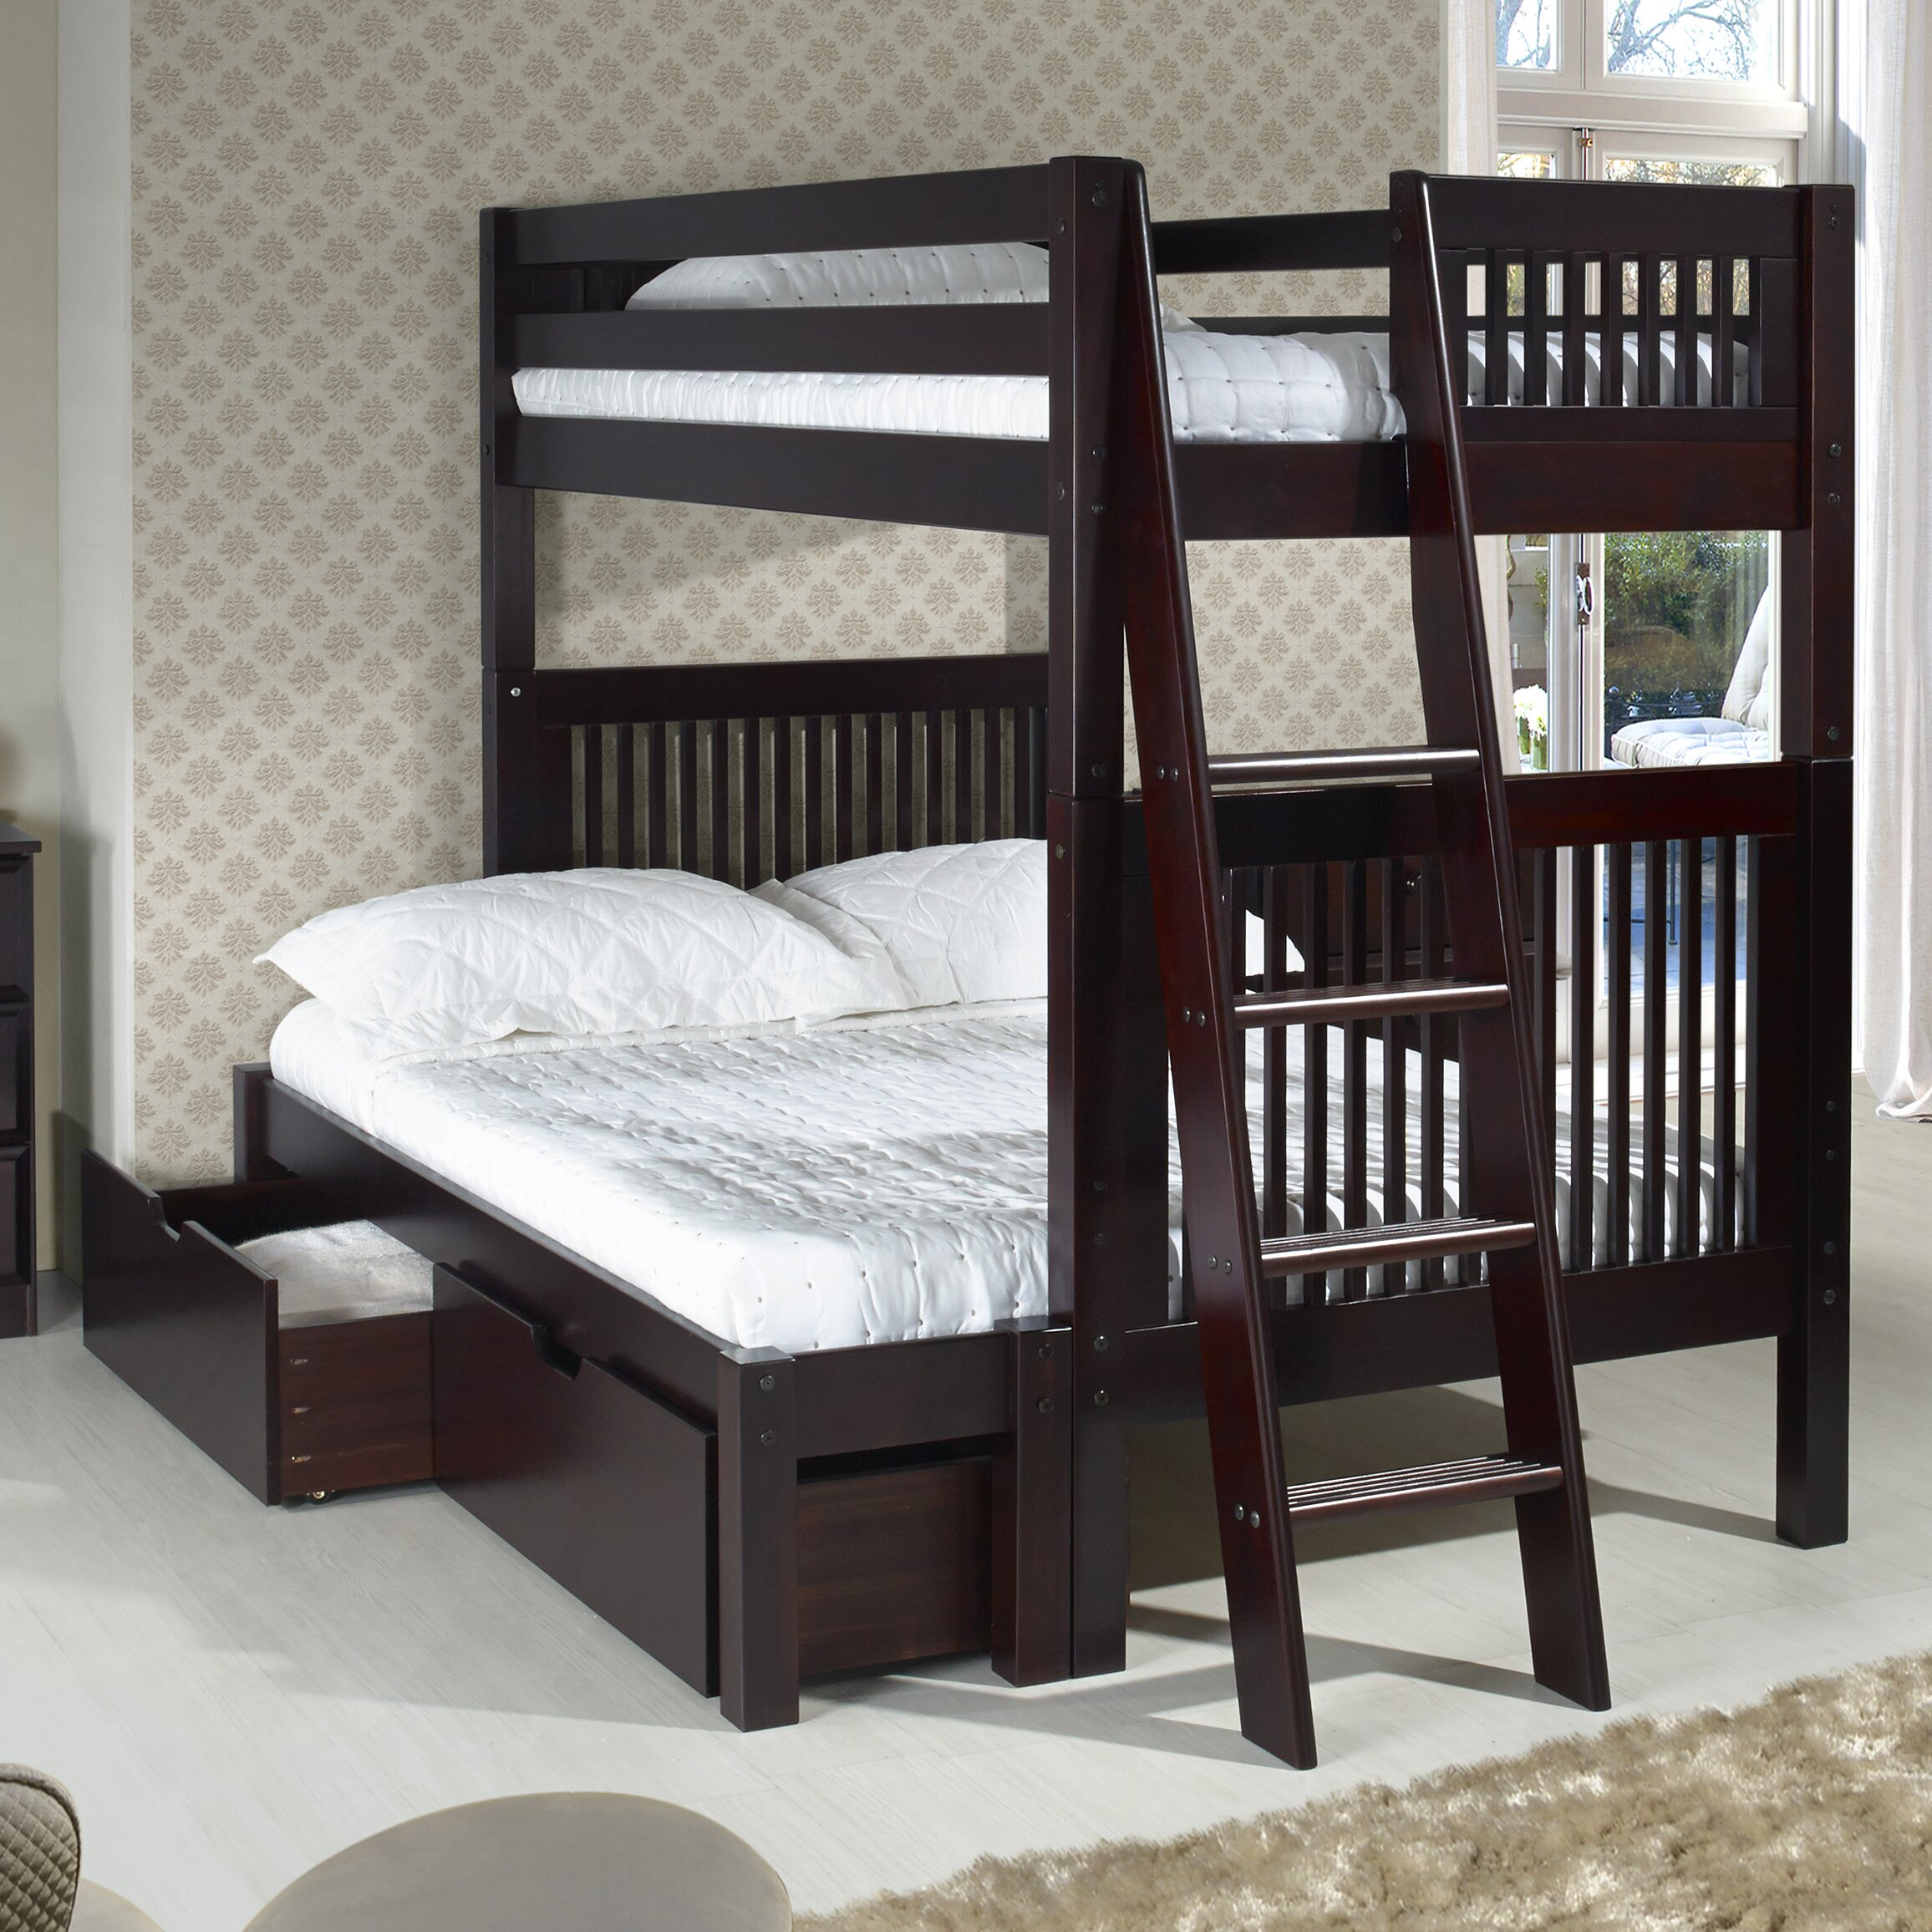 Camaflexi Twin Over Full Bunk Bed With Storage Wayfair Ca